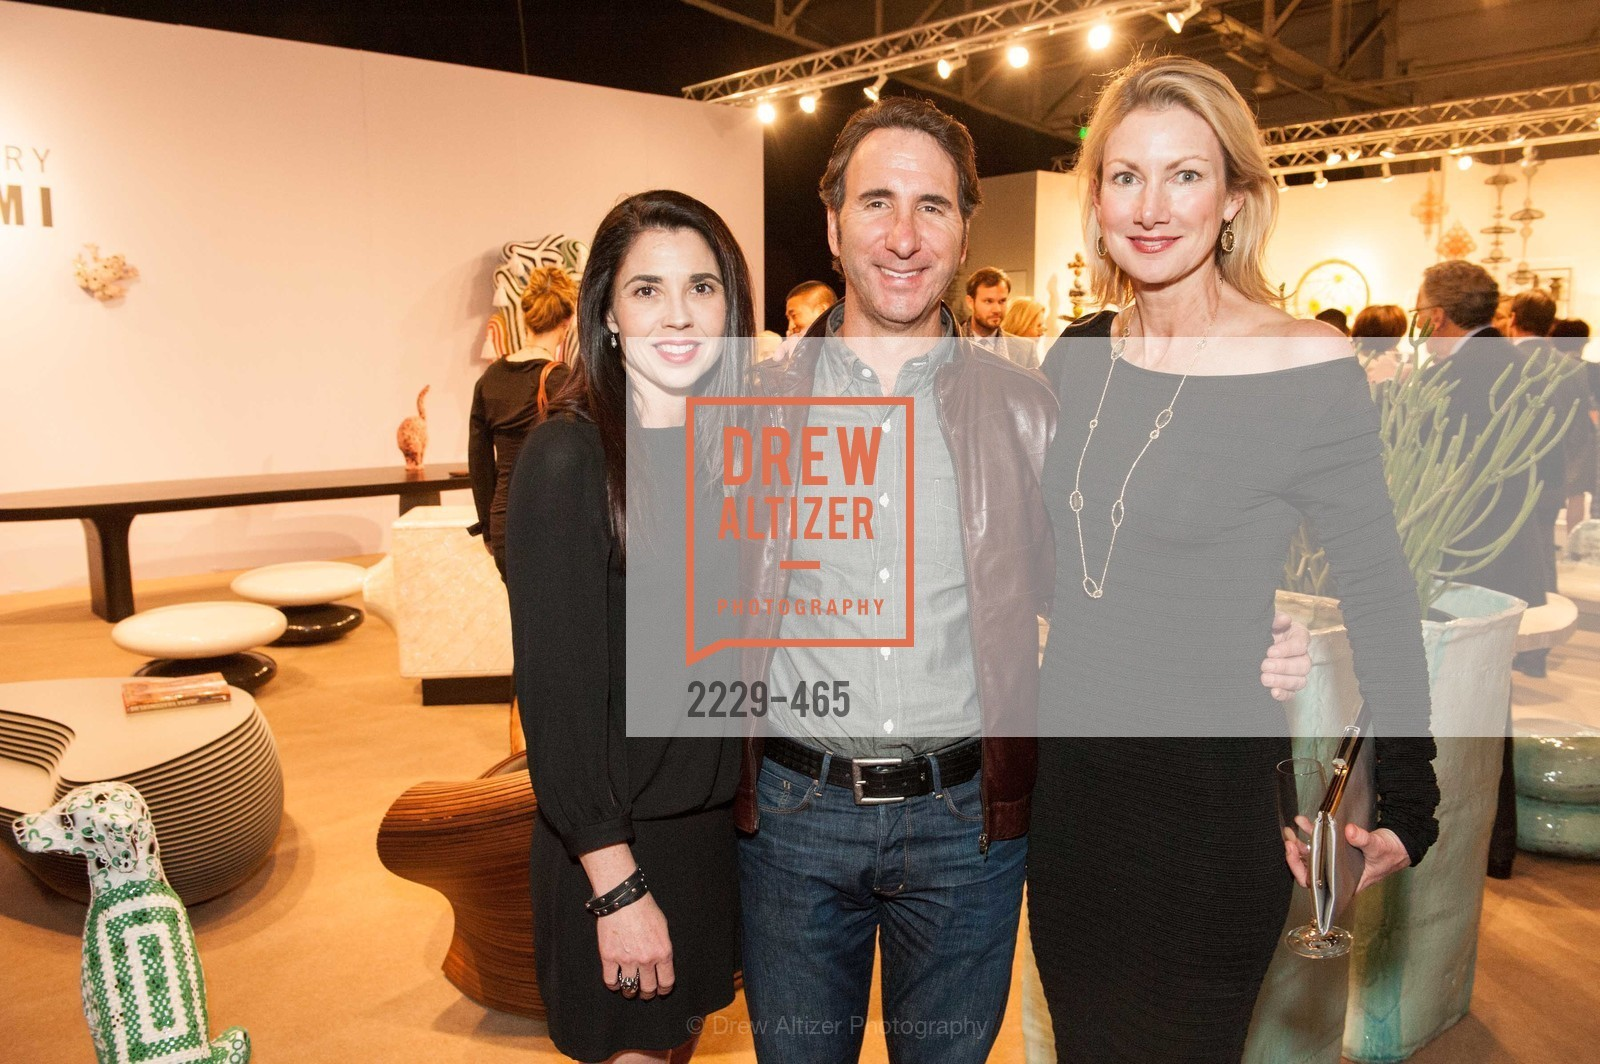 Candace Cavanaugh, Mario Roghiero, Shirley Parks, FOG Design + Art Preview Gala, US. US, January 16th, 2014,Drew Altizer, Drew Altizer Photography, full-service event agency, private events, San Francisco photographer, photographer California